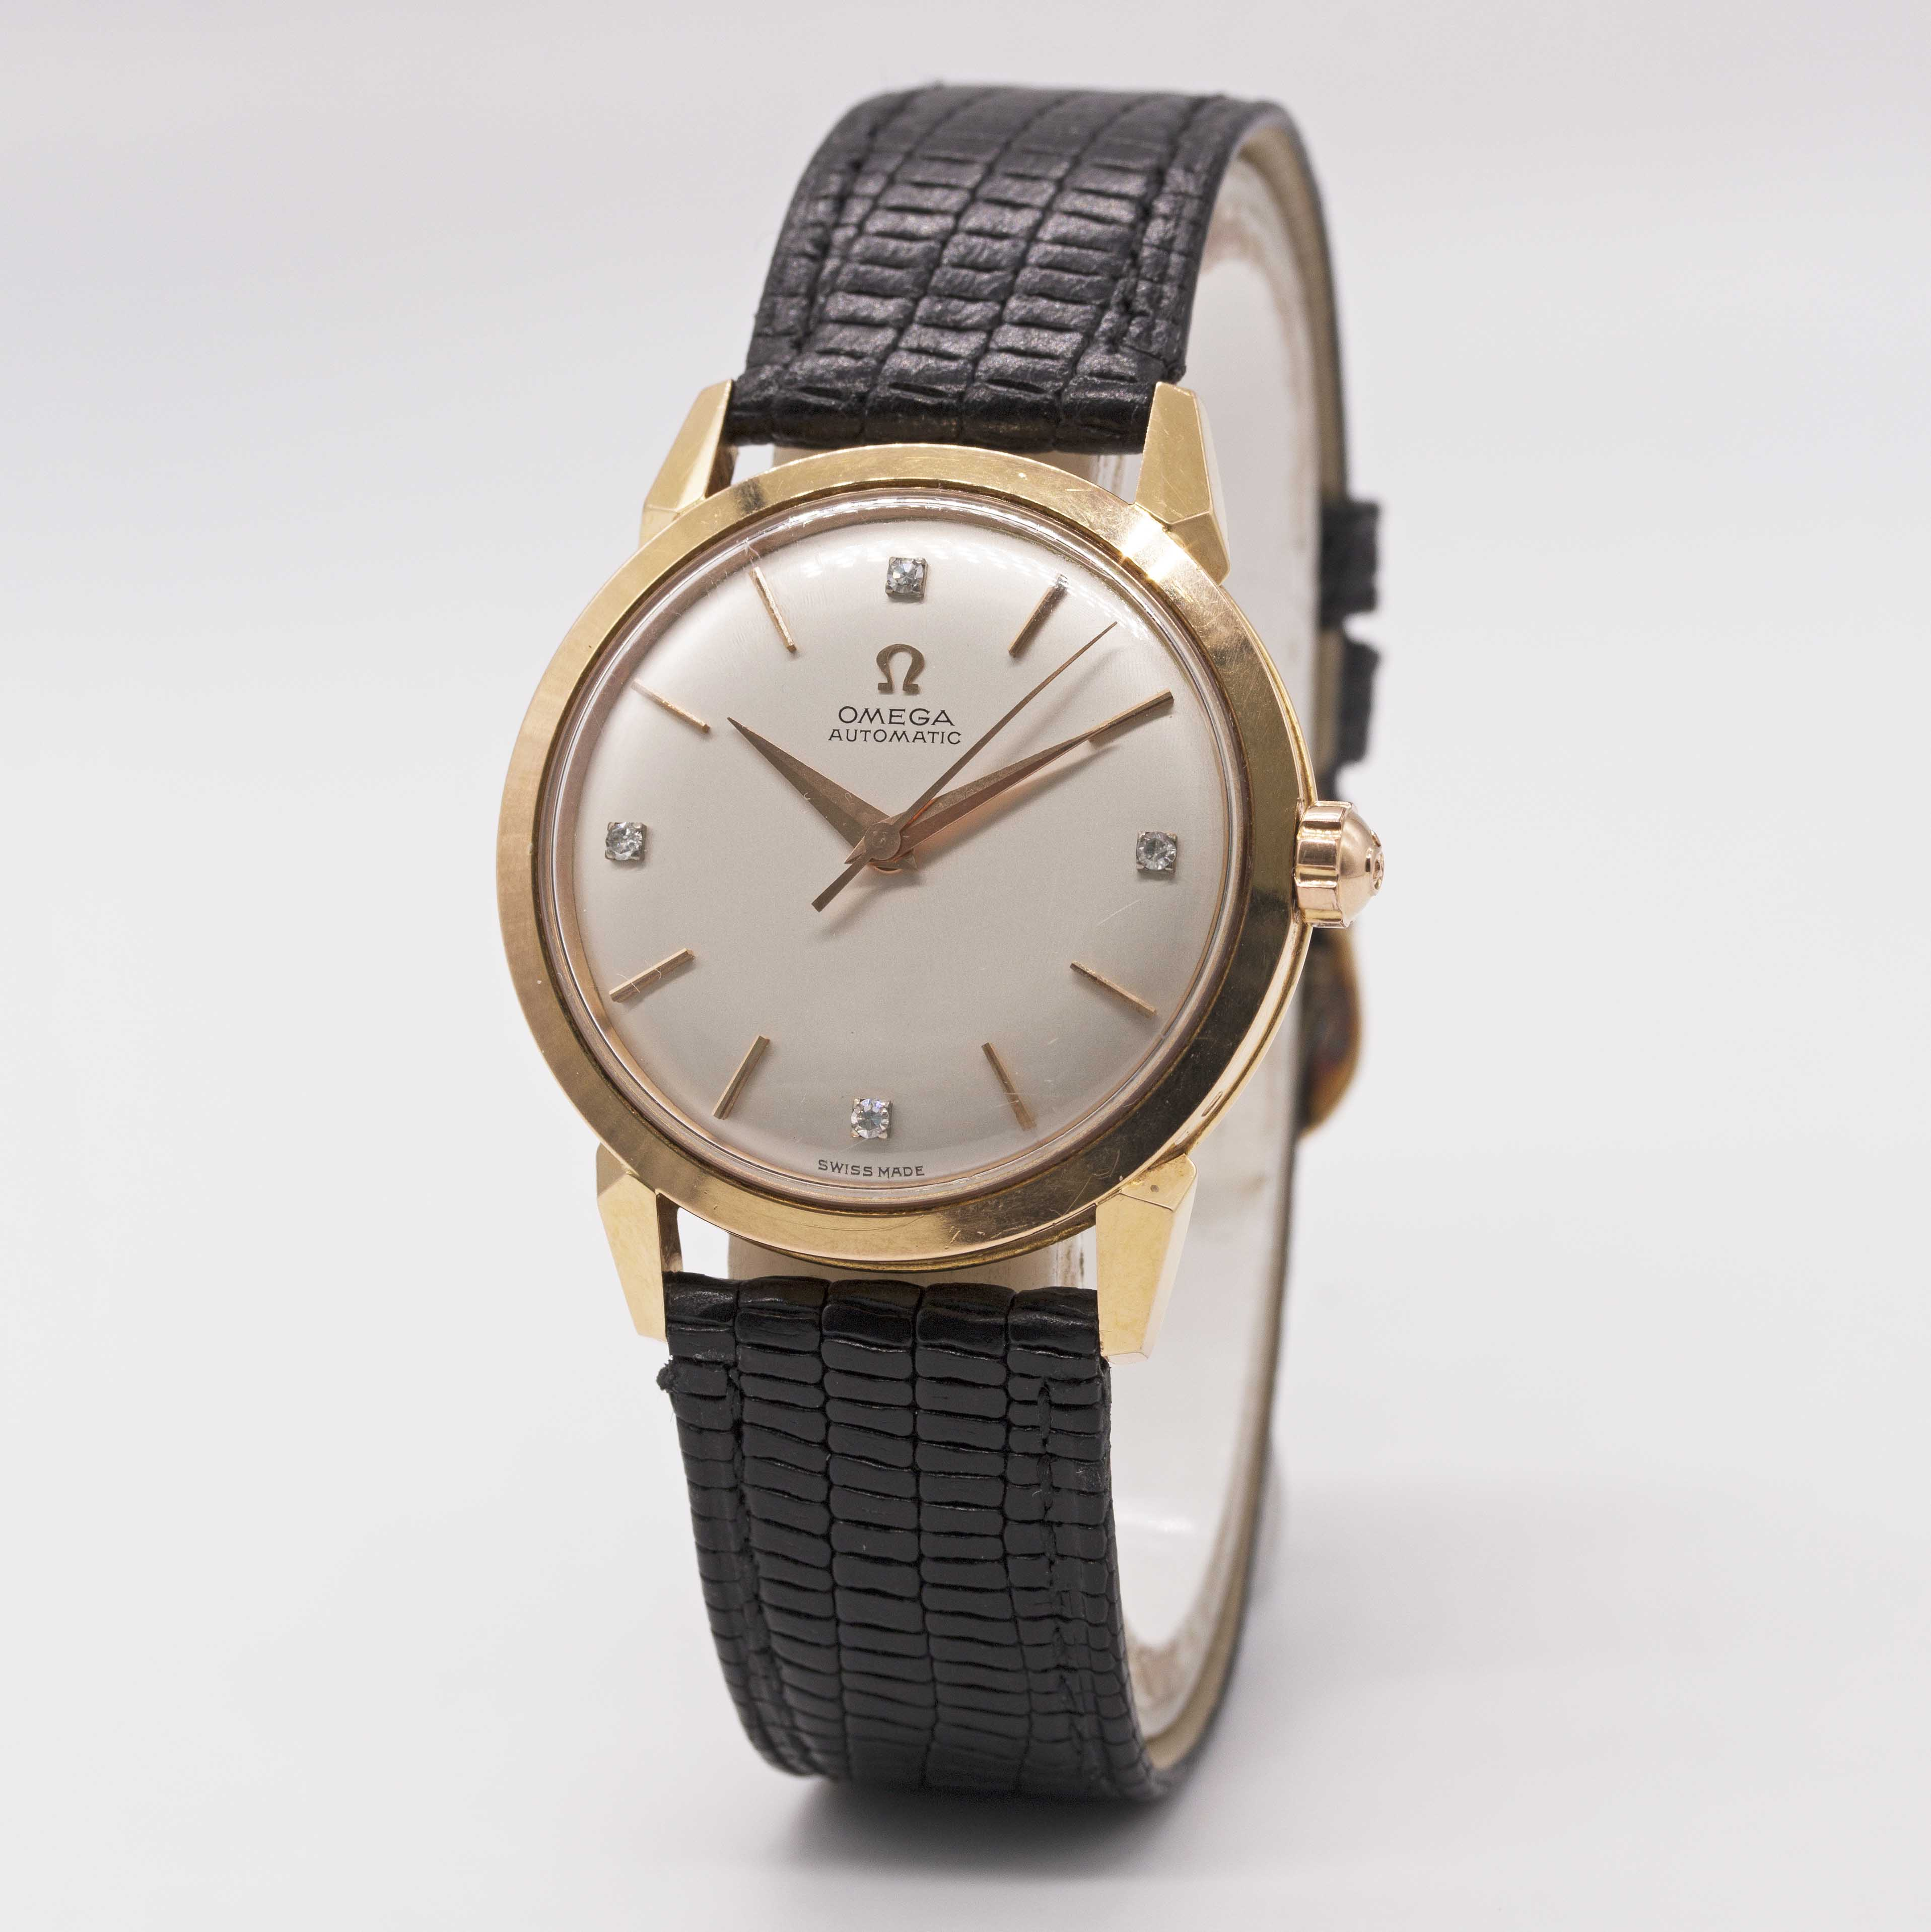 Lot 16 - A FINE GENTLEMAN'S 18K SOLID ROSE GOLD OMEGA AUTOMATIC WRIST WATCH CIRCA 1952, REF. 2736 S.C WITH